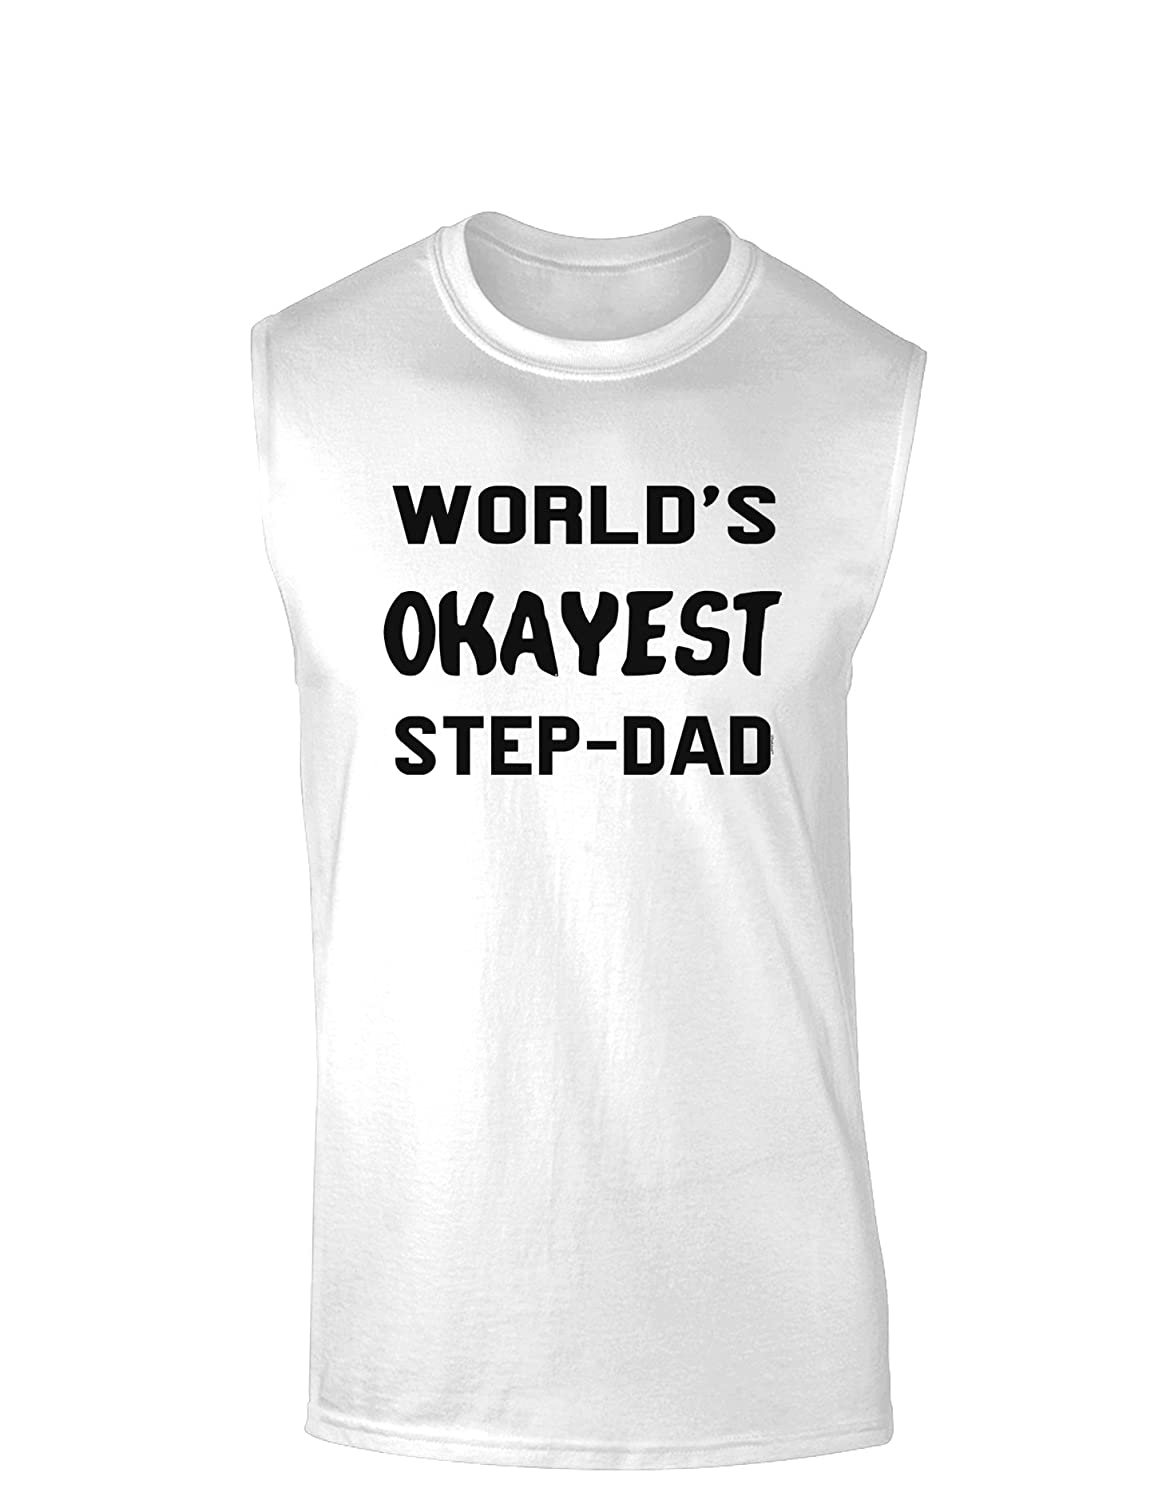 Worlds Okayest Step-Dad Muscle Shirt